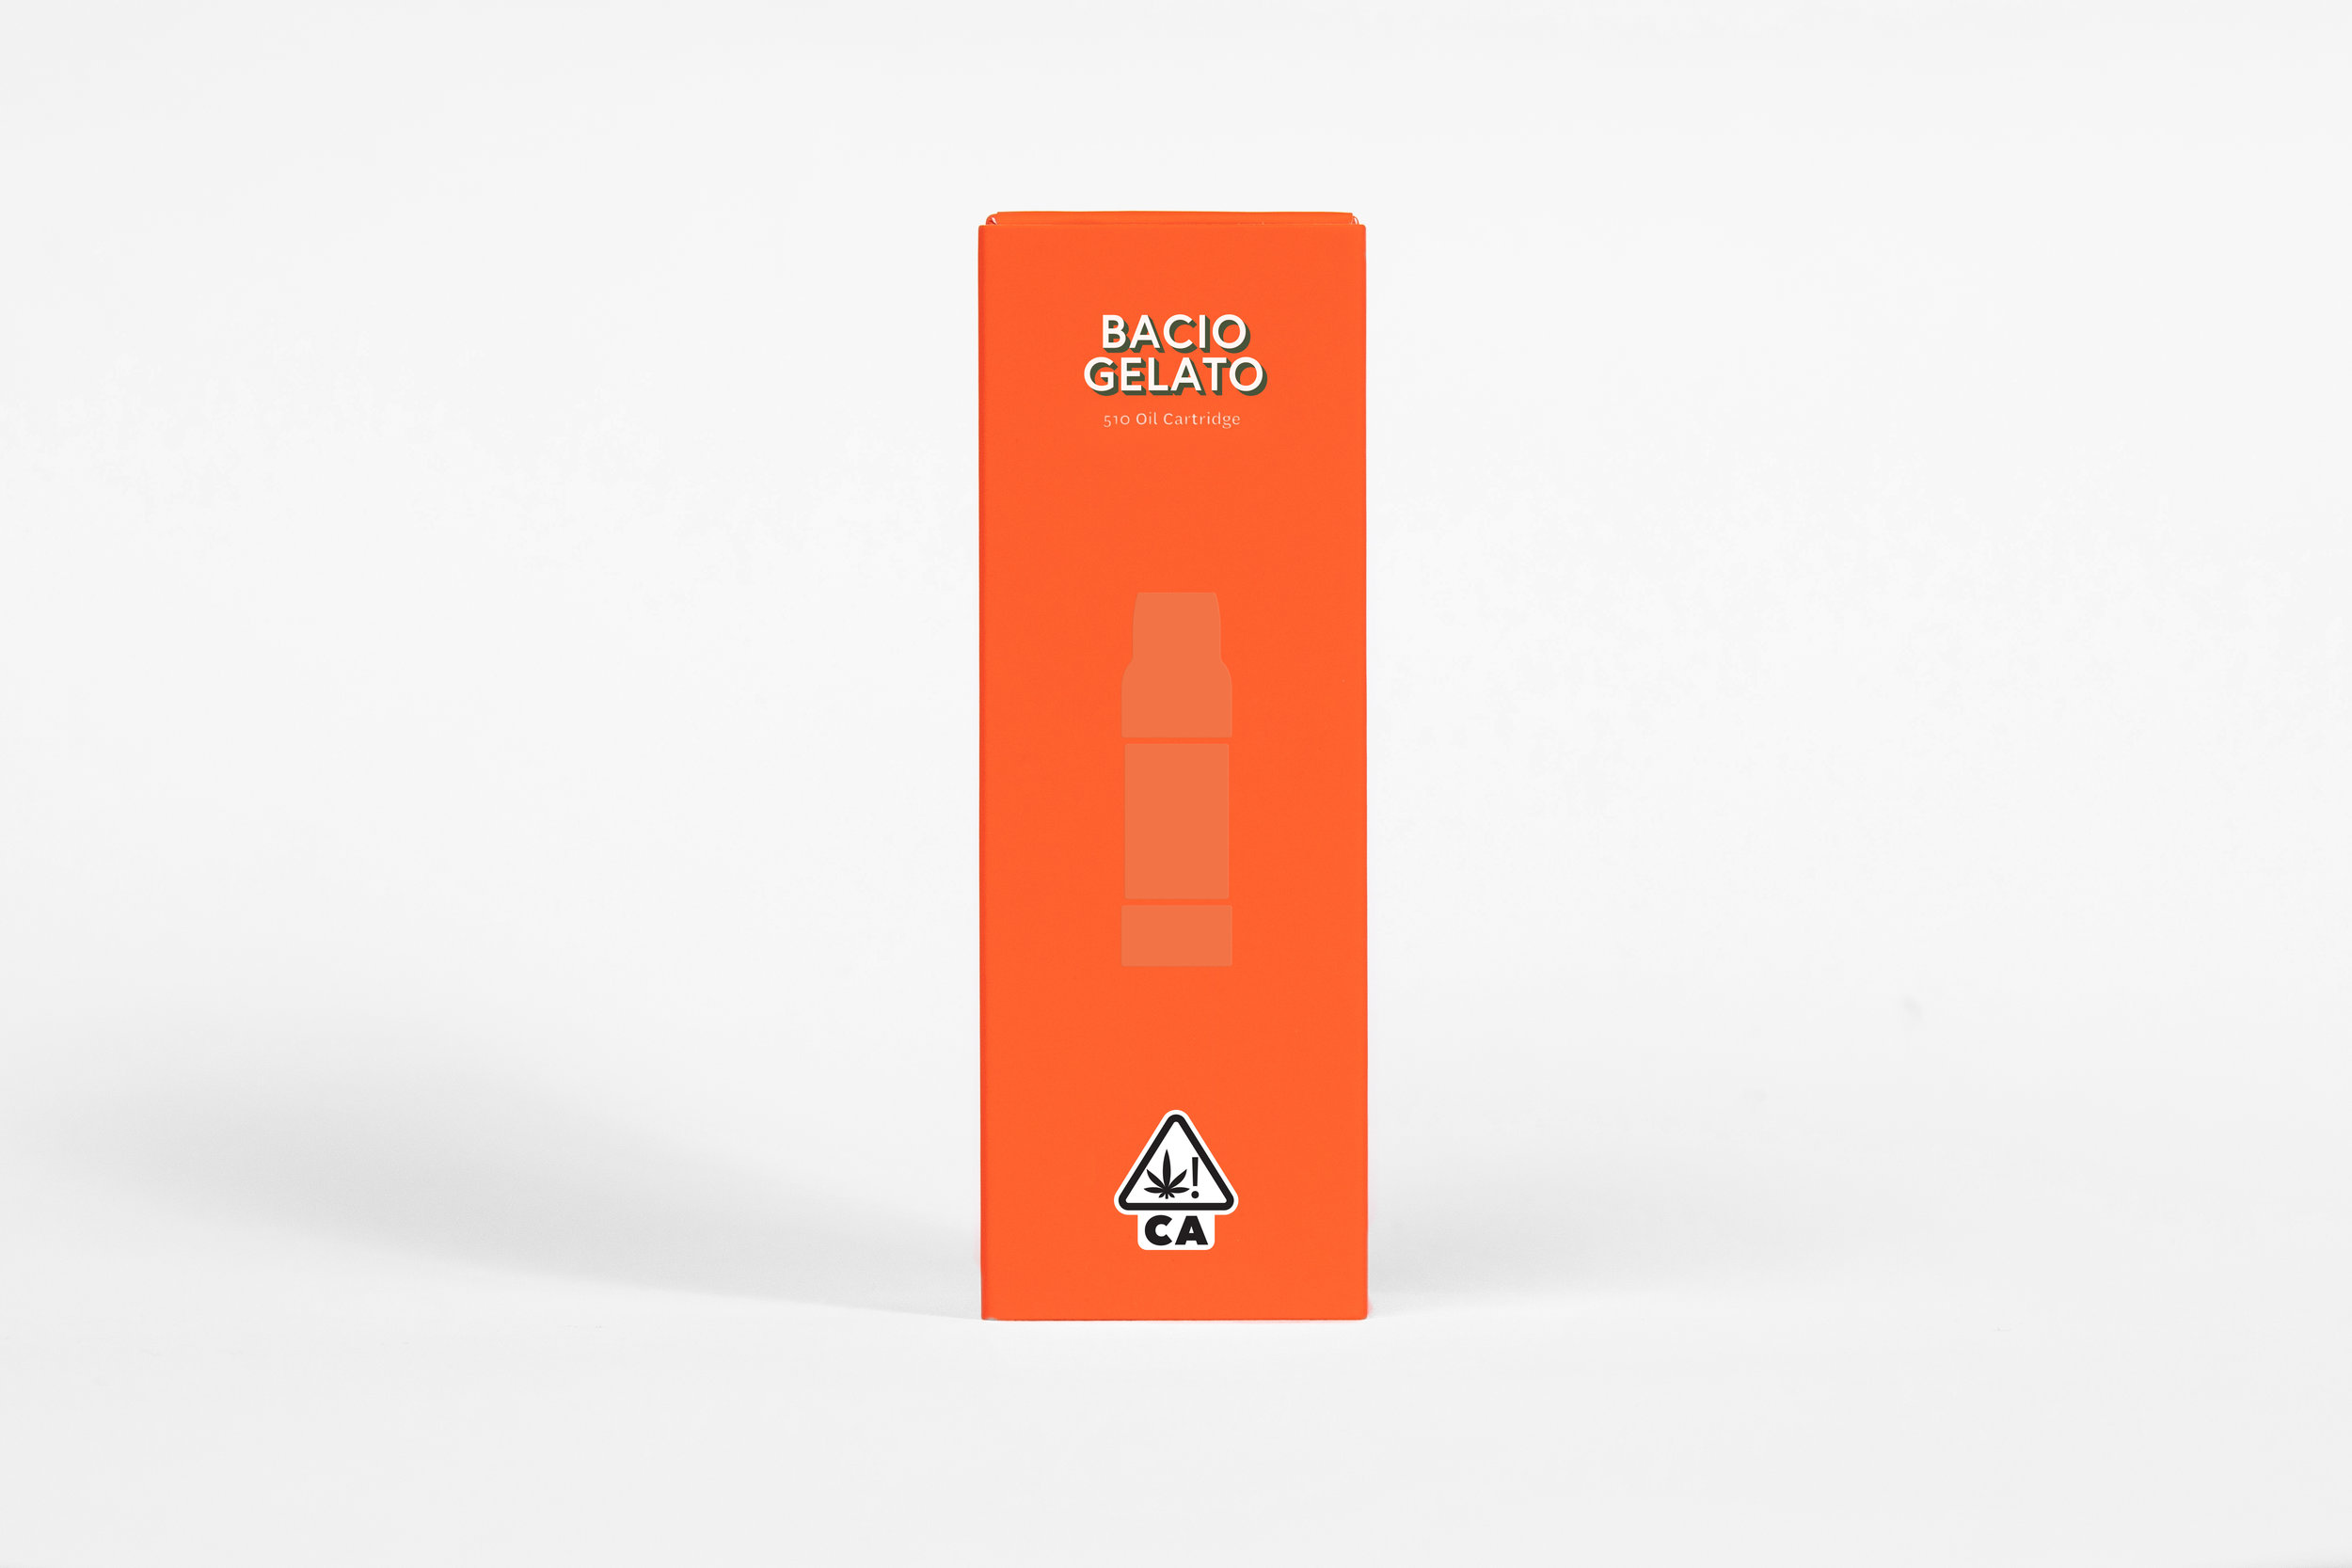 BACIO-GELATO-Vape-Cart-packaging.jpg